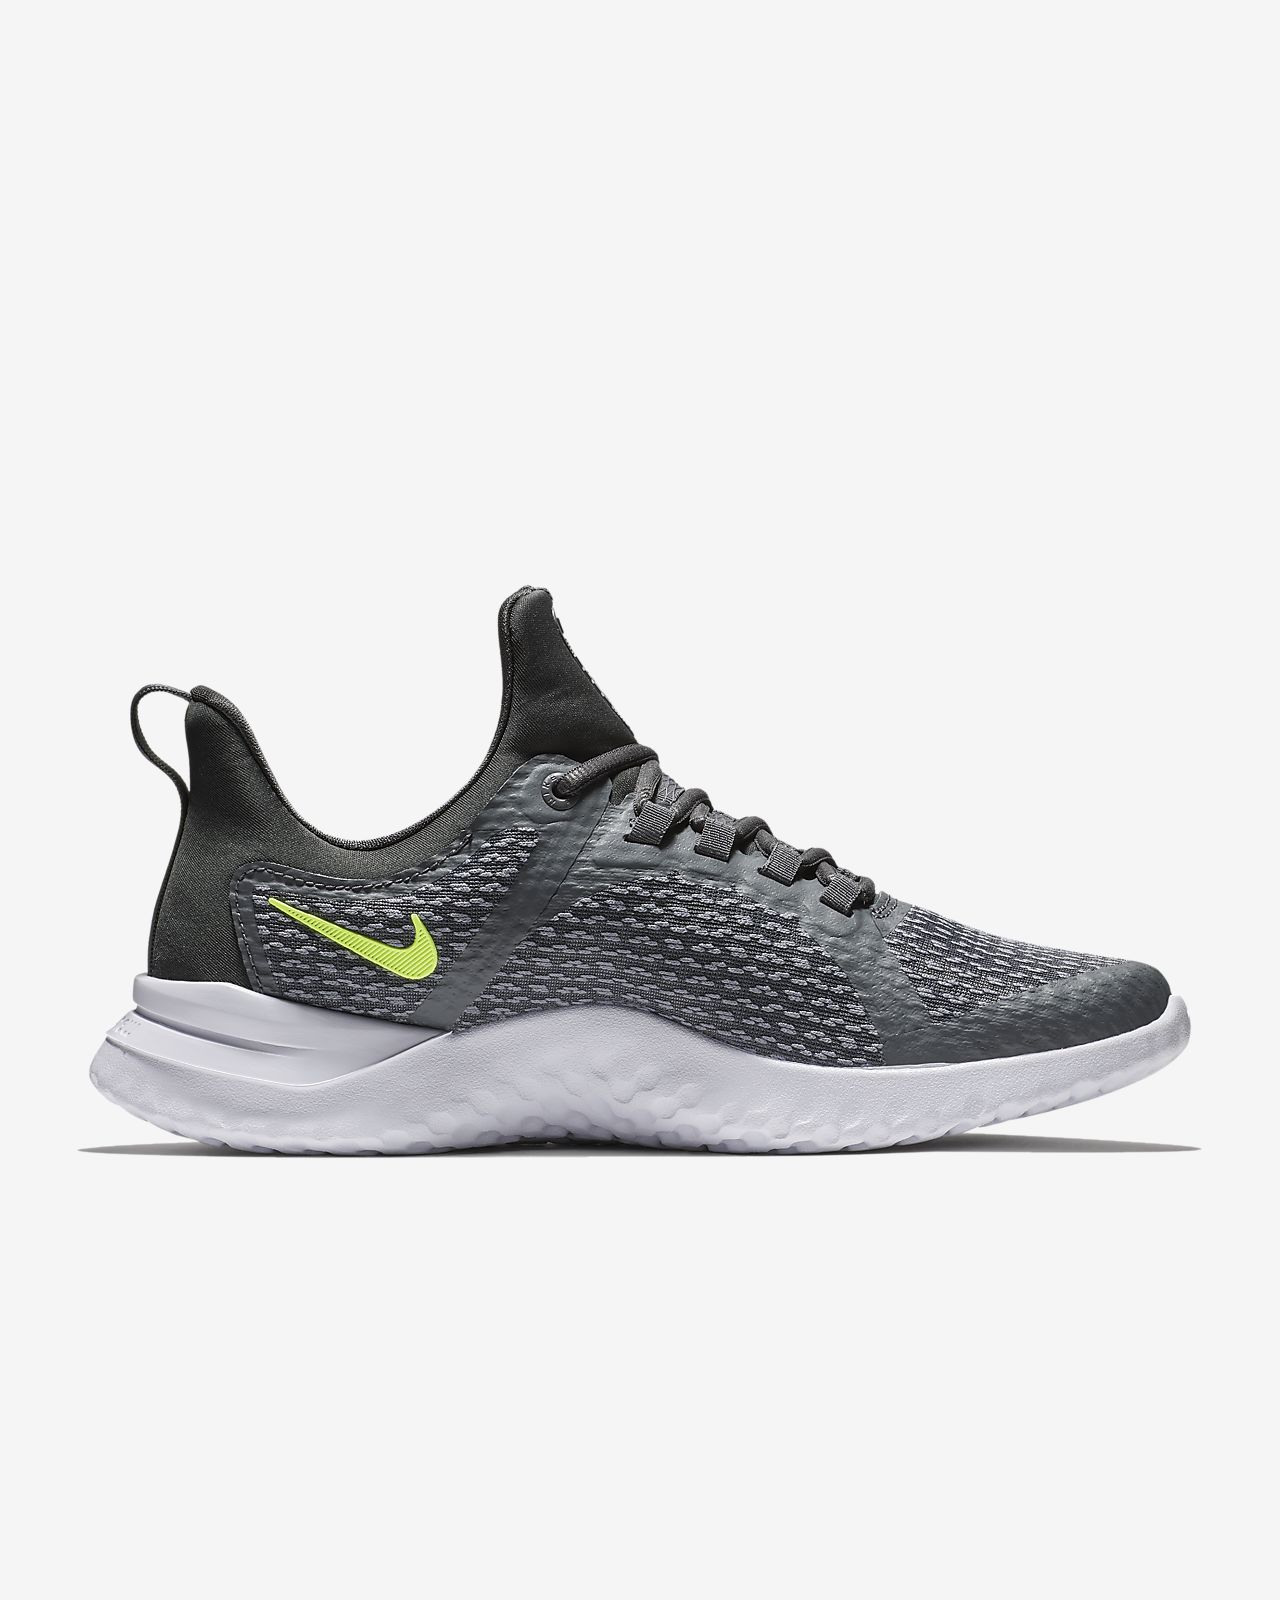 outlet how much footlocker finishline online Nike Renew Rival Men's Running ... Shoes cheap sale official 5UMOJaQB